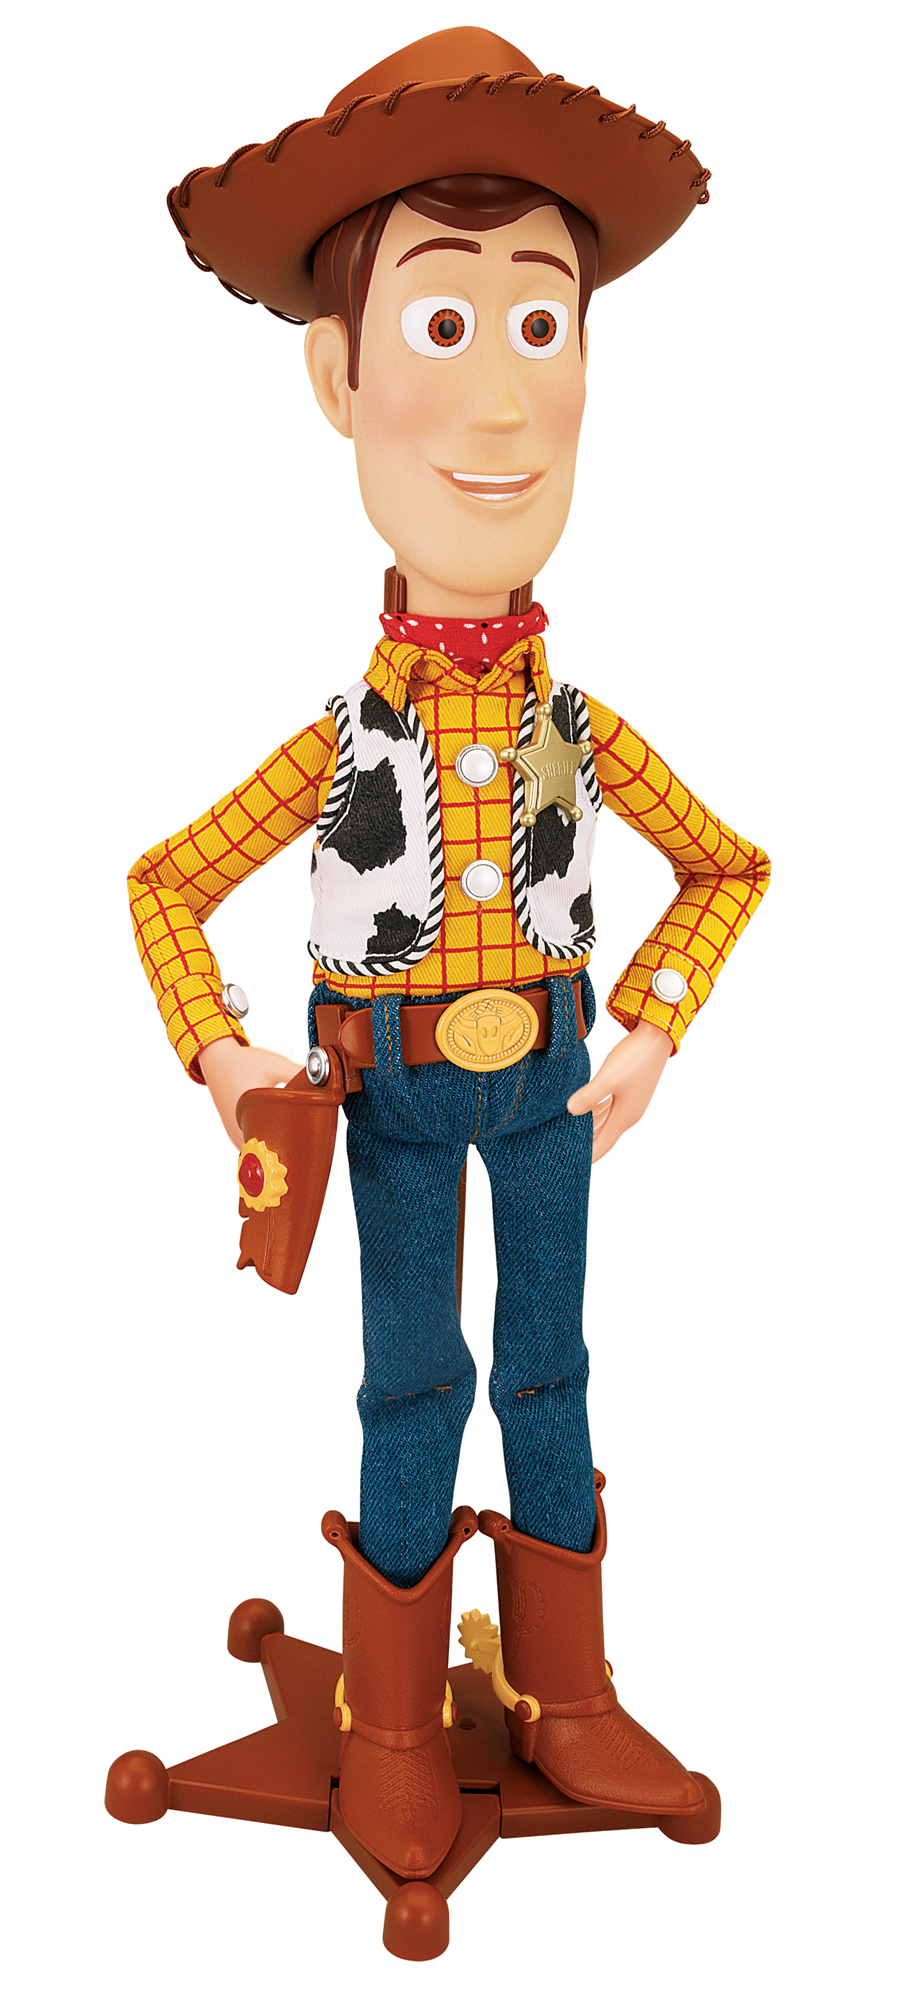 Toy Story Toys : Woody toy story merchandise wiki fandom powered by wikia